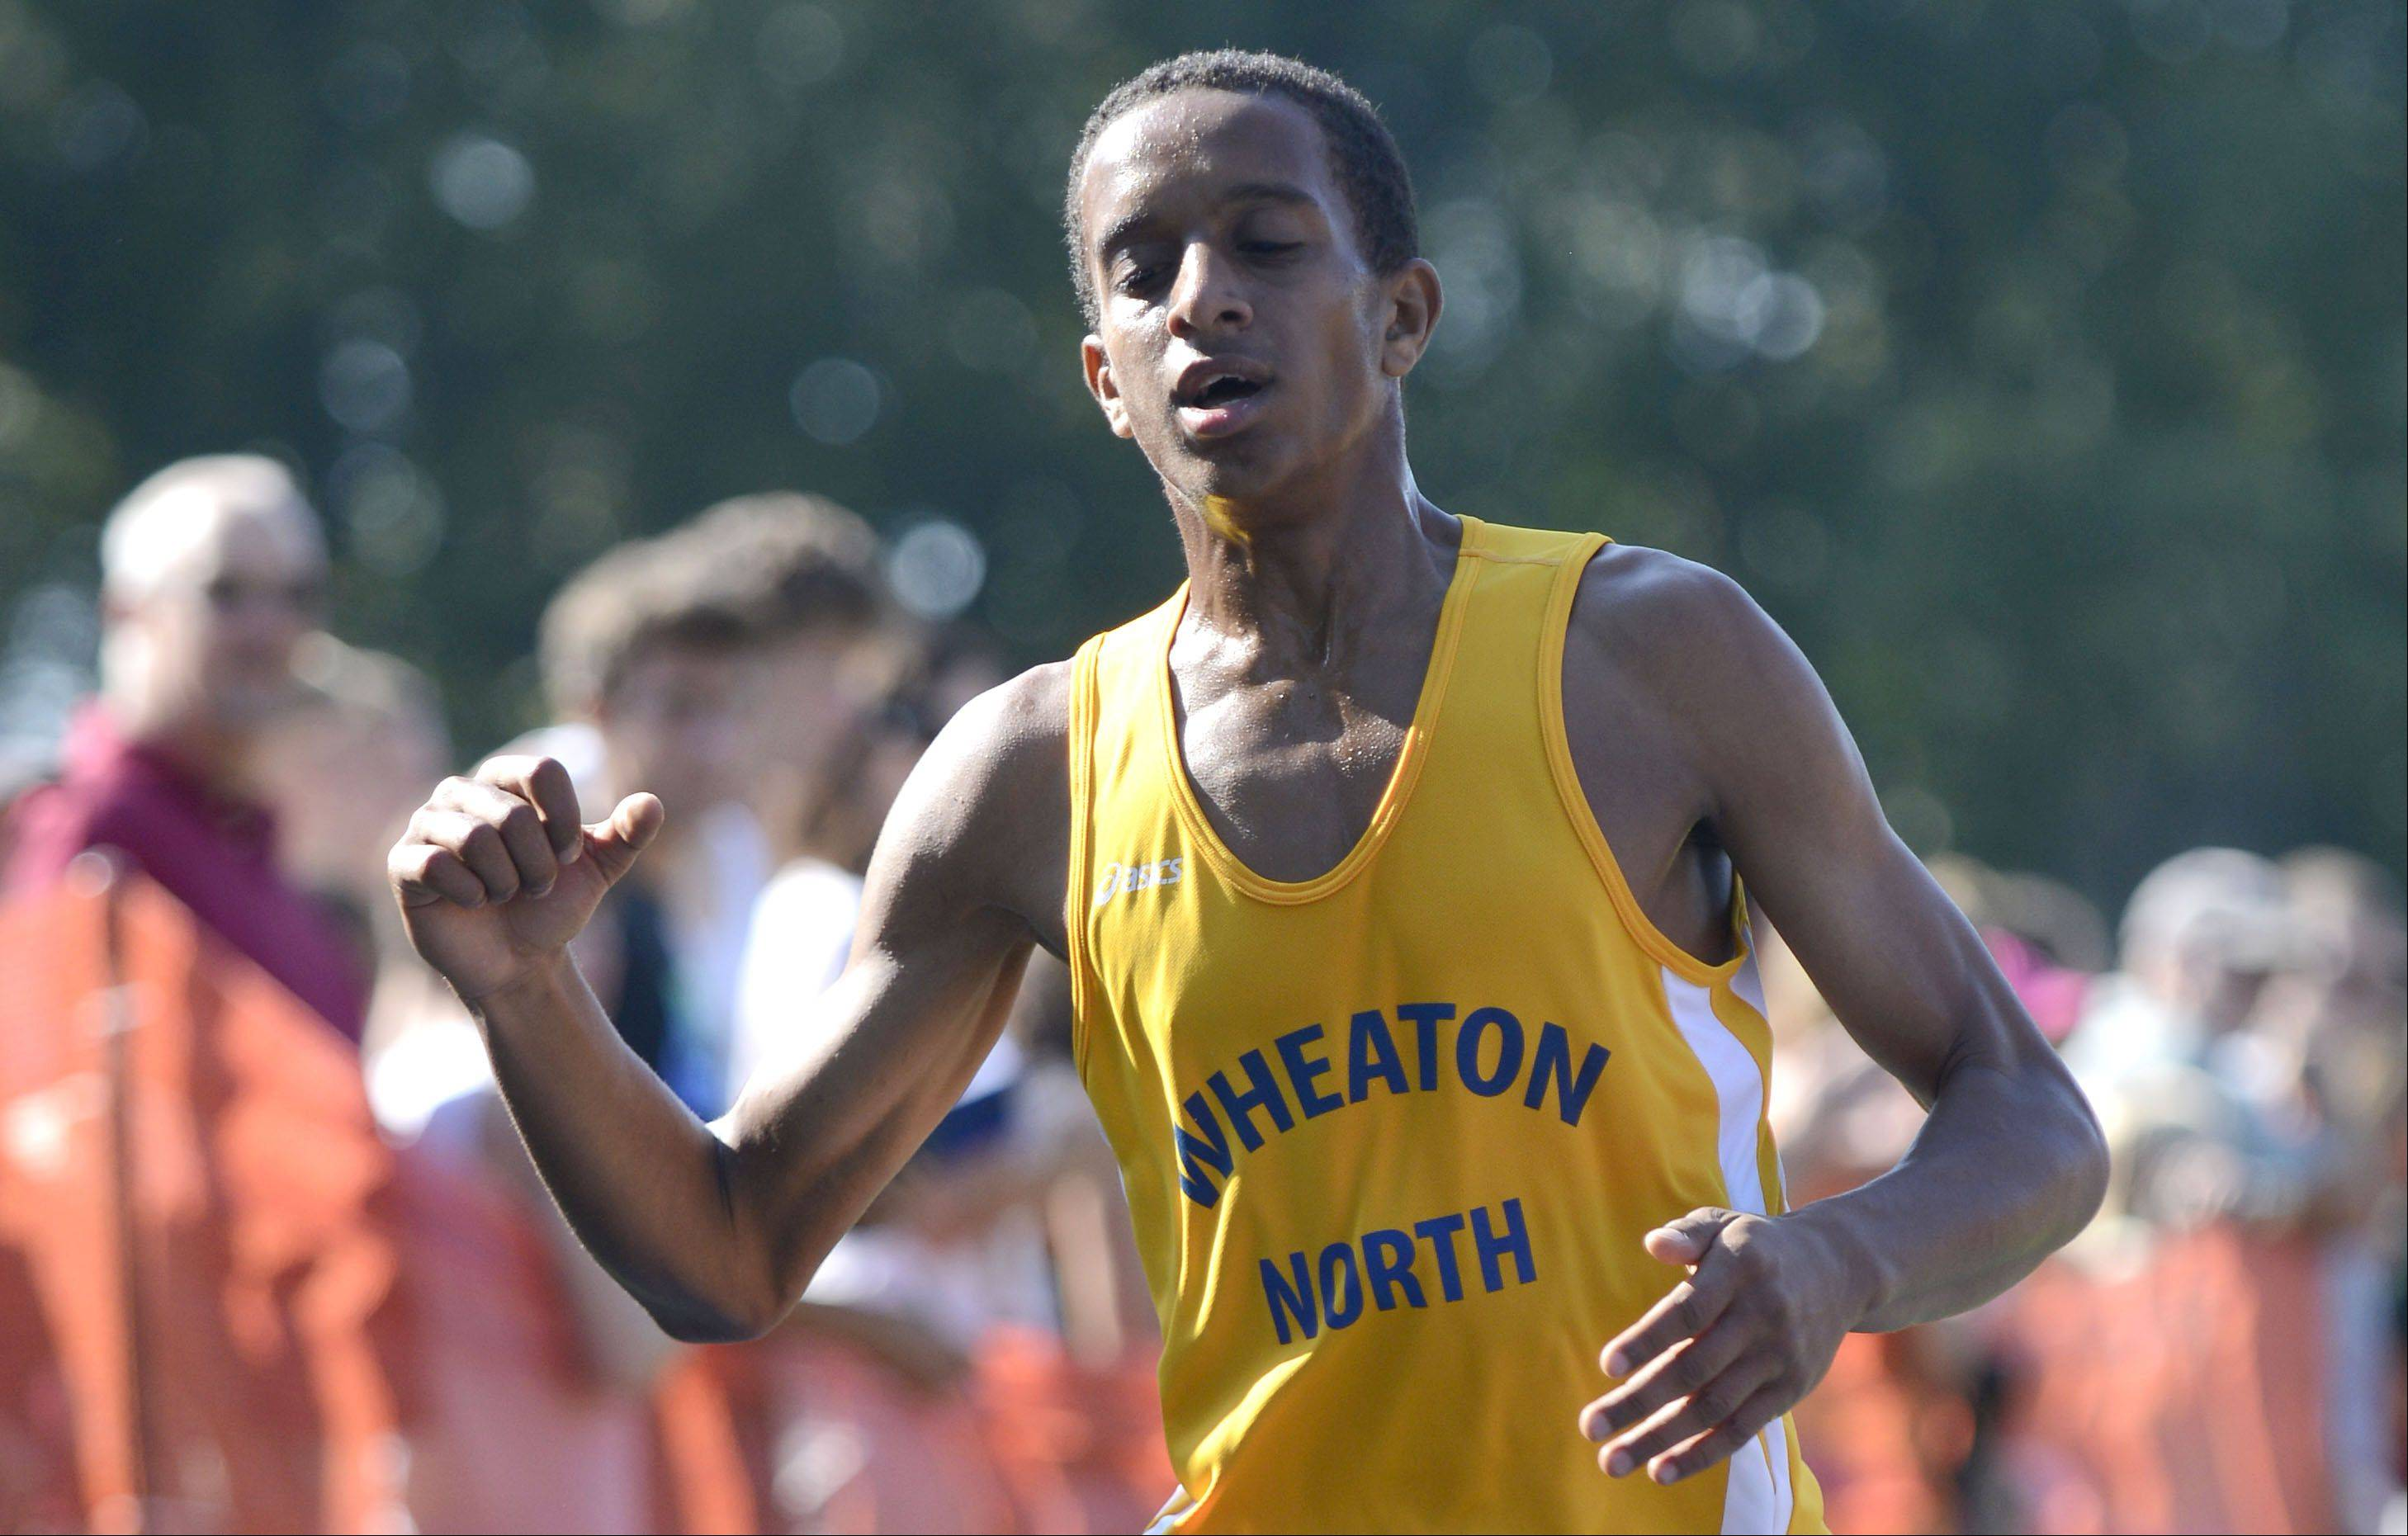 Wheaton North's Joseph Emmanuel crosses the finish line taking second place in varsity in the meet at Leroy Oakes Forest Preserve in St. Charles on Saturday, September 7.